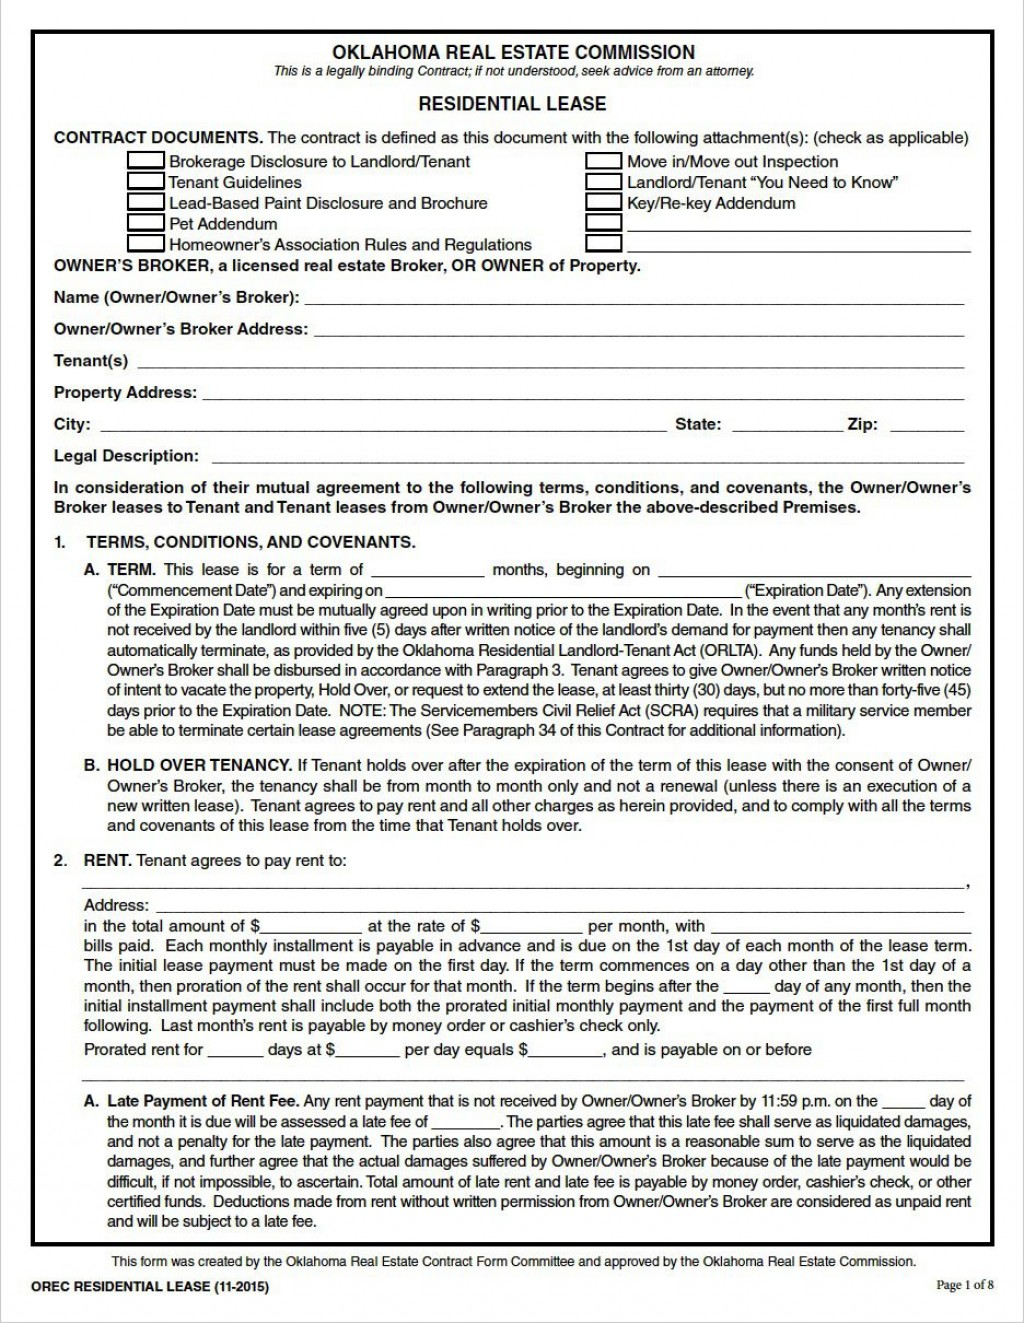 004 Impressive Renter Lease Agreement Template High Definition  Apartment Form Early Termination Of By Tenant South Africa FreeLarge